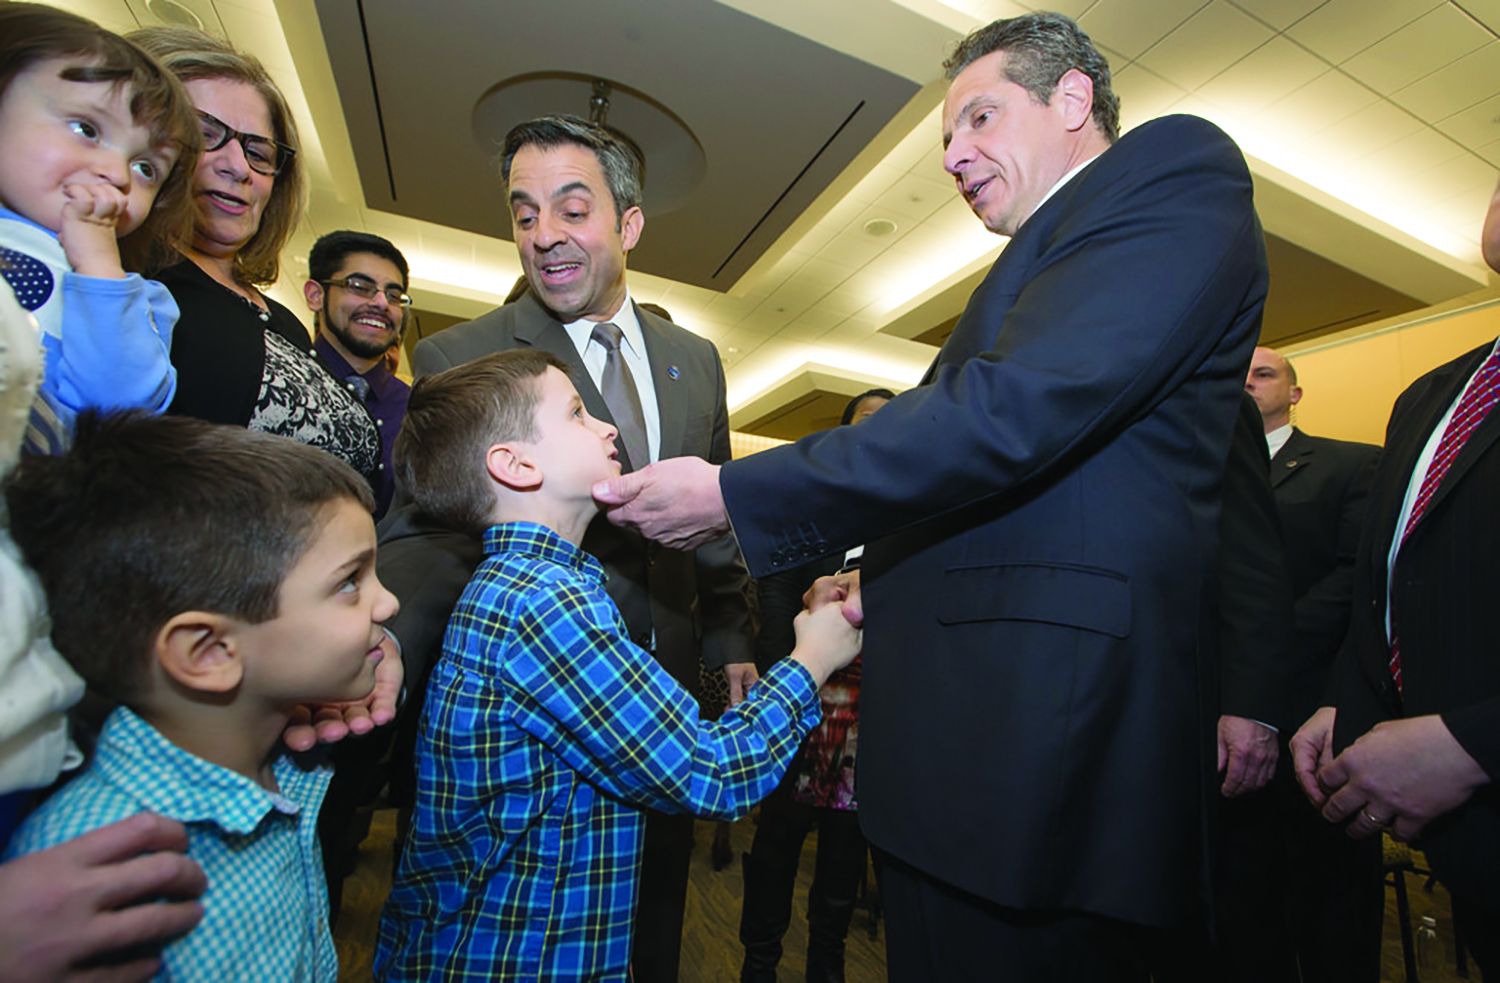 Gov. Cuomo loves the little children. He wants them to have a bright future, which is why he's spending $70 million on the state-owned waterfront while reneging on tens of millions in aid promised for downtown Niagara Falls.